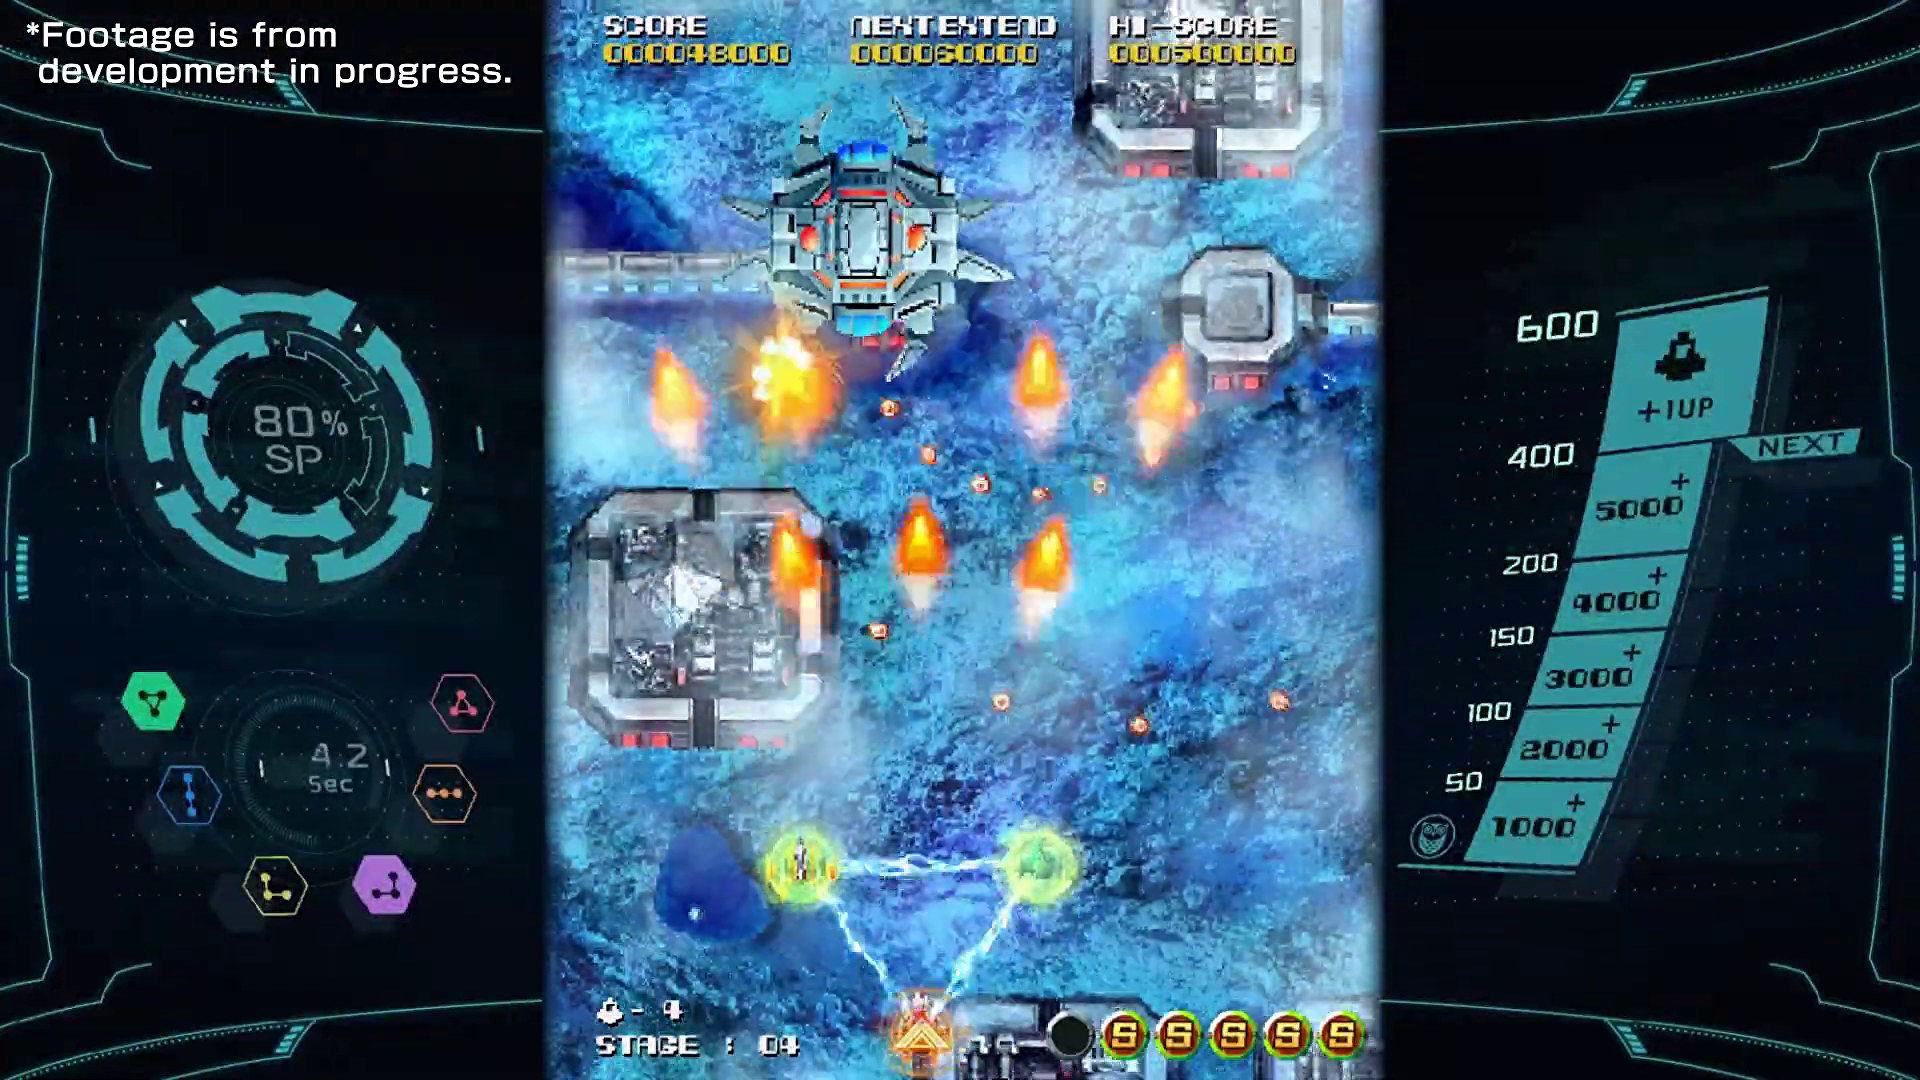 Platinum announce arcade shmup Sol Cresta, maybe not as a joke this time